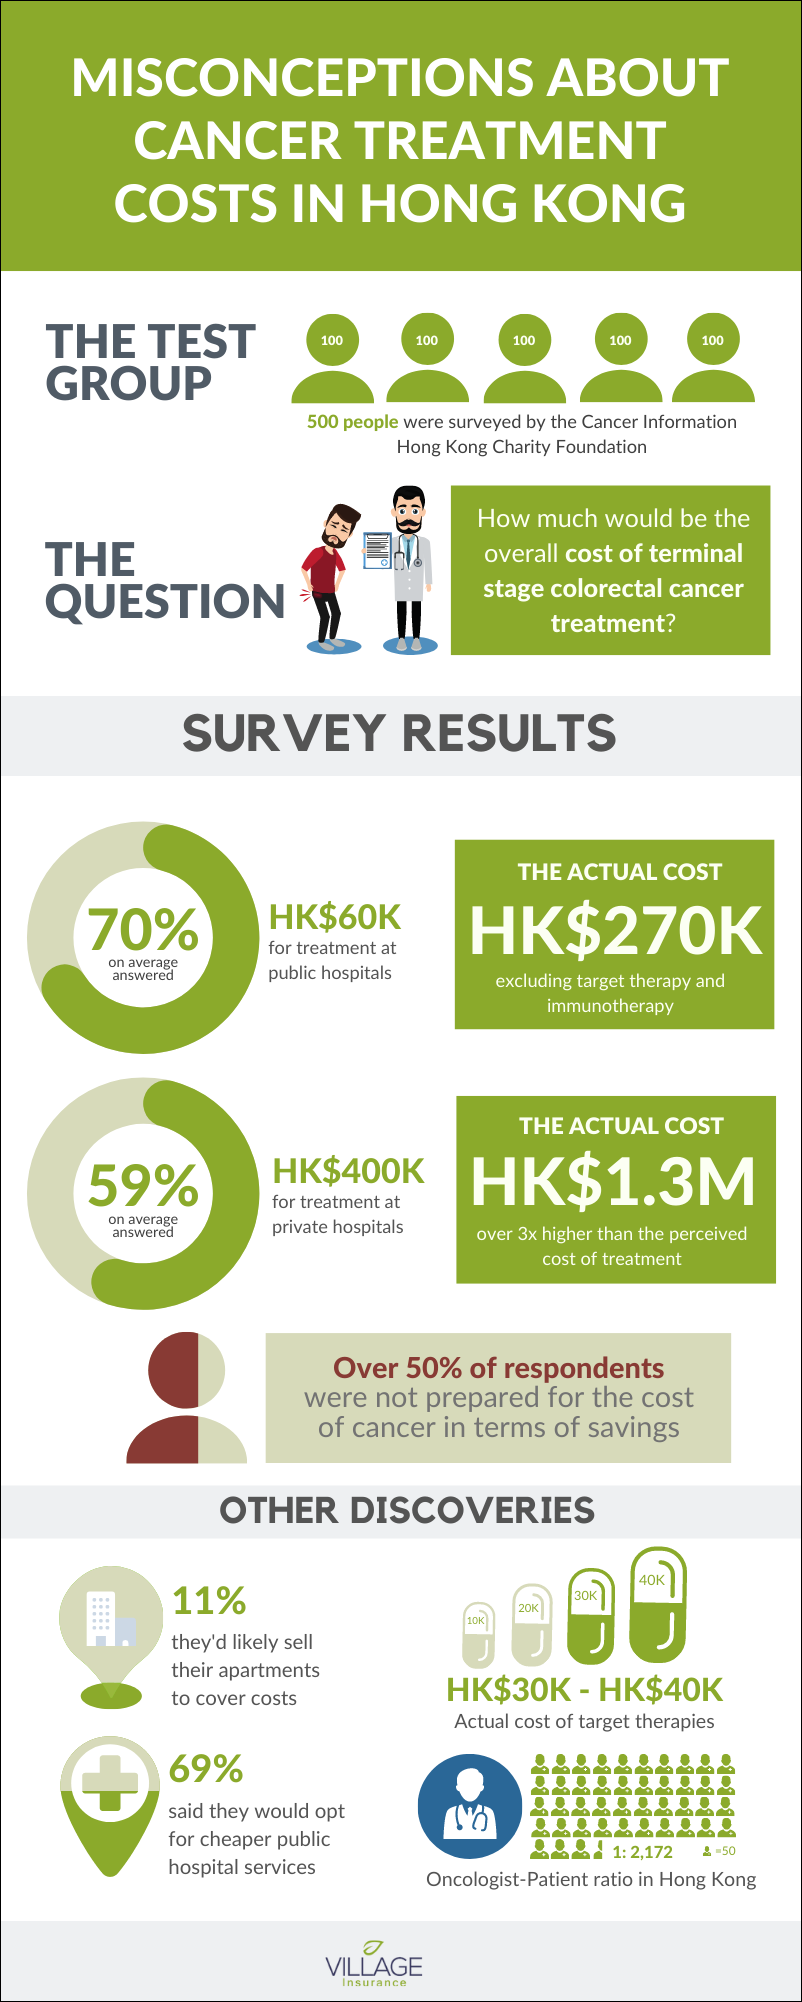 The Cancer Information Hong Kong Charity Foundation interviewed 500 people and asked them how much they thought would be the overall cost of terminal stage colorectal cancer treatment.